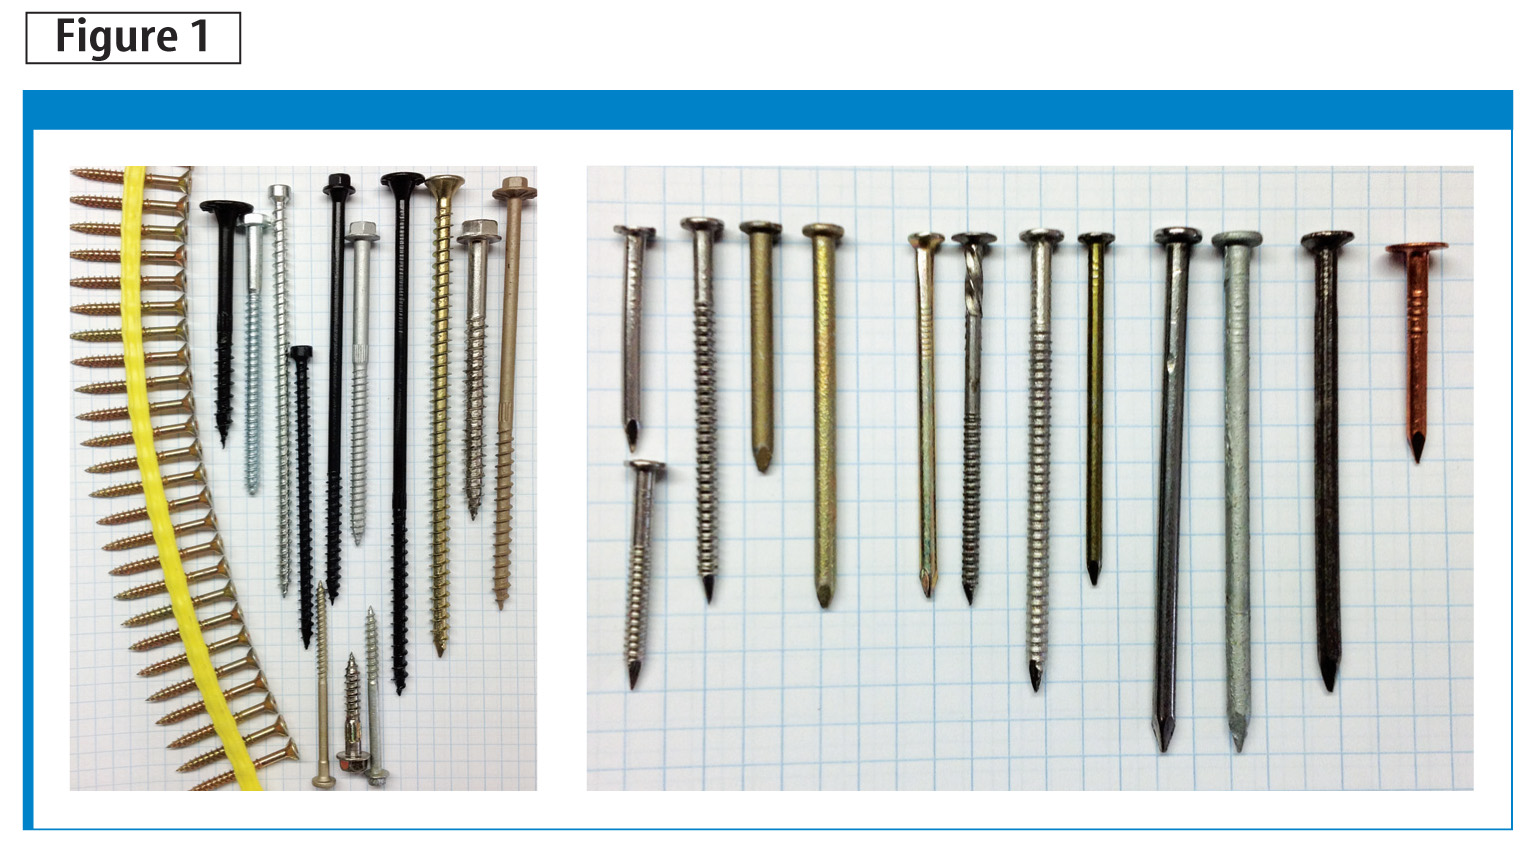 These photos show examples of screws (left) and nails (right) used in light-frame construction. The example screws include collated screws for subfl oor fastening, metal connector screws, and purposed wood screws.The nails include metal connector nails (e.g. stainless ring-shanks and mechanically galvanized), general framing and sheathing nails including bright smooth-shank, ring-shank stainless, and hot-dip galvanized, masonry nail, and a copper roofi ng nail.